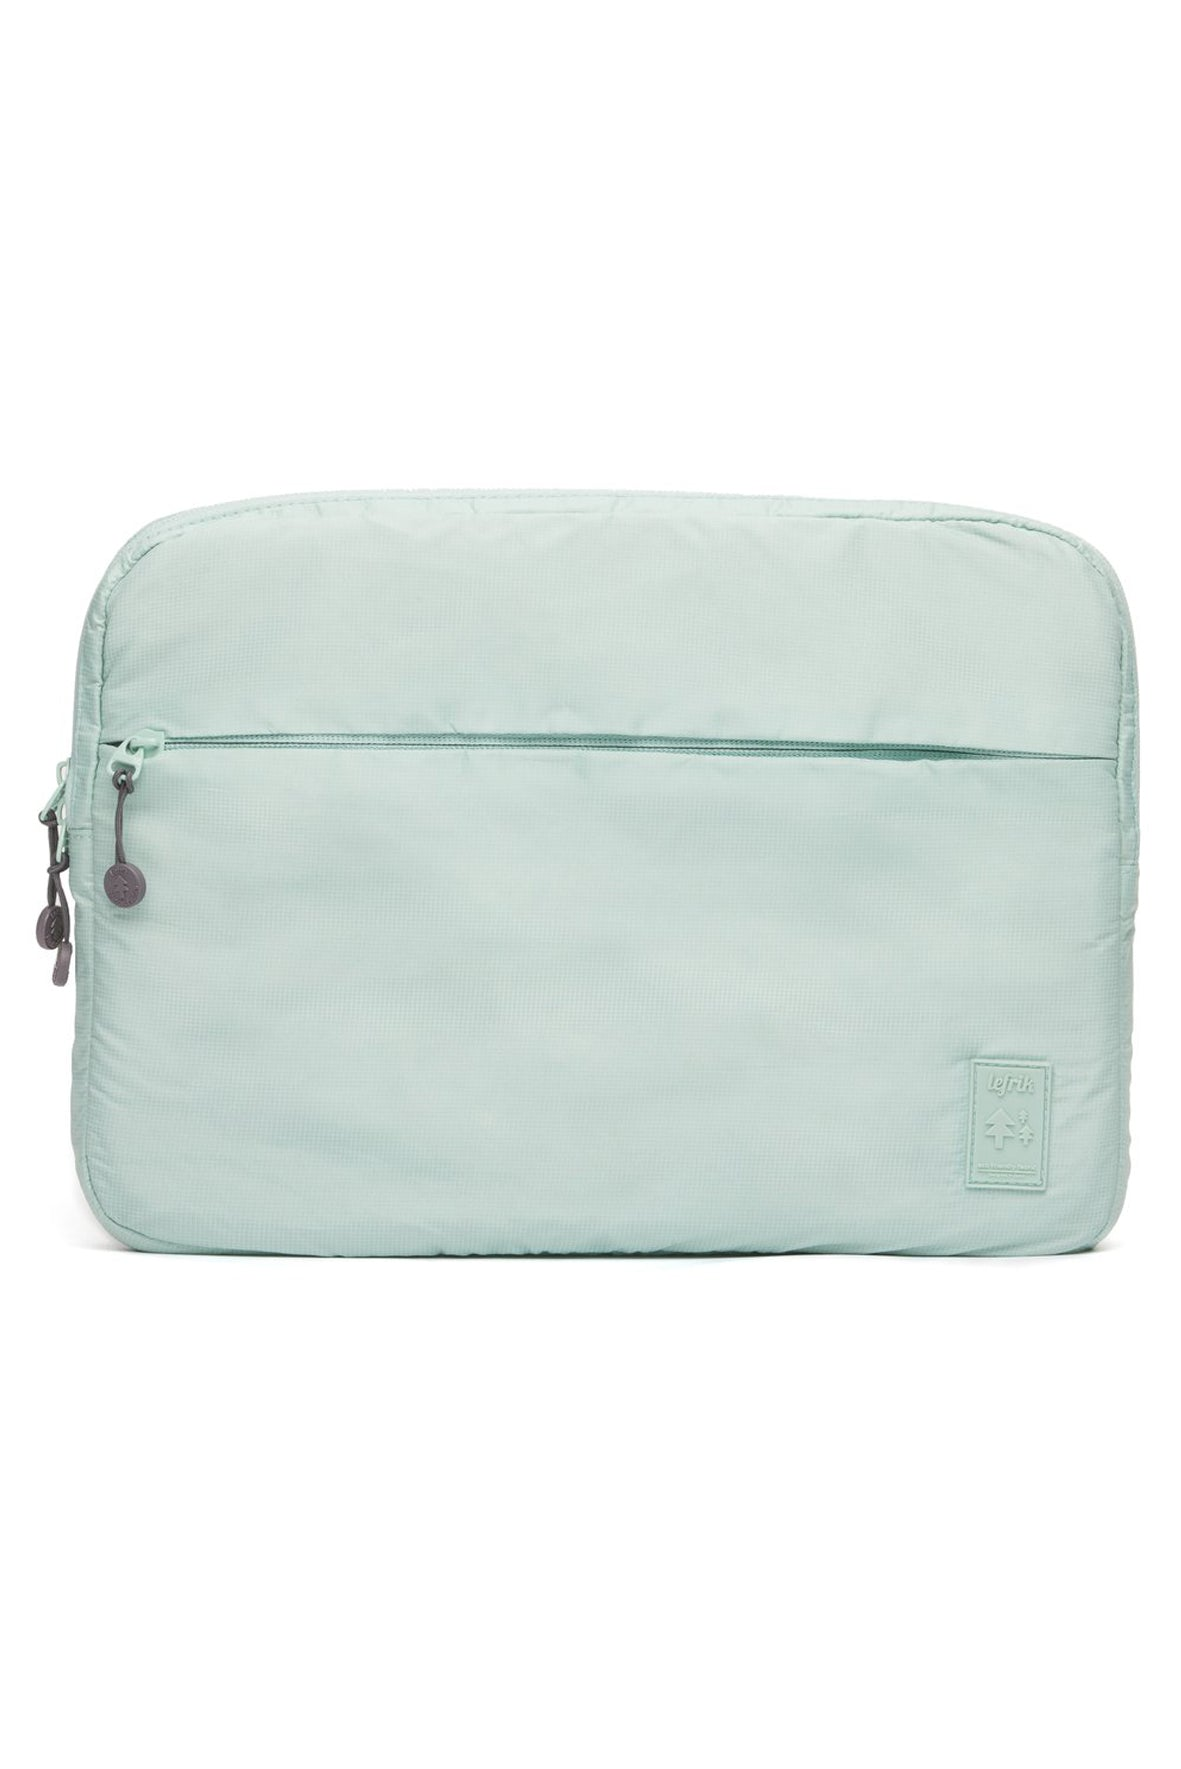 Laptop Sleeve | Frosted Blue | Accessories | Lefrik | [product_tag] - Fair Bazaar Ethical Living